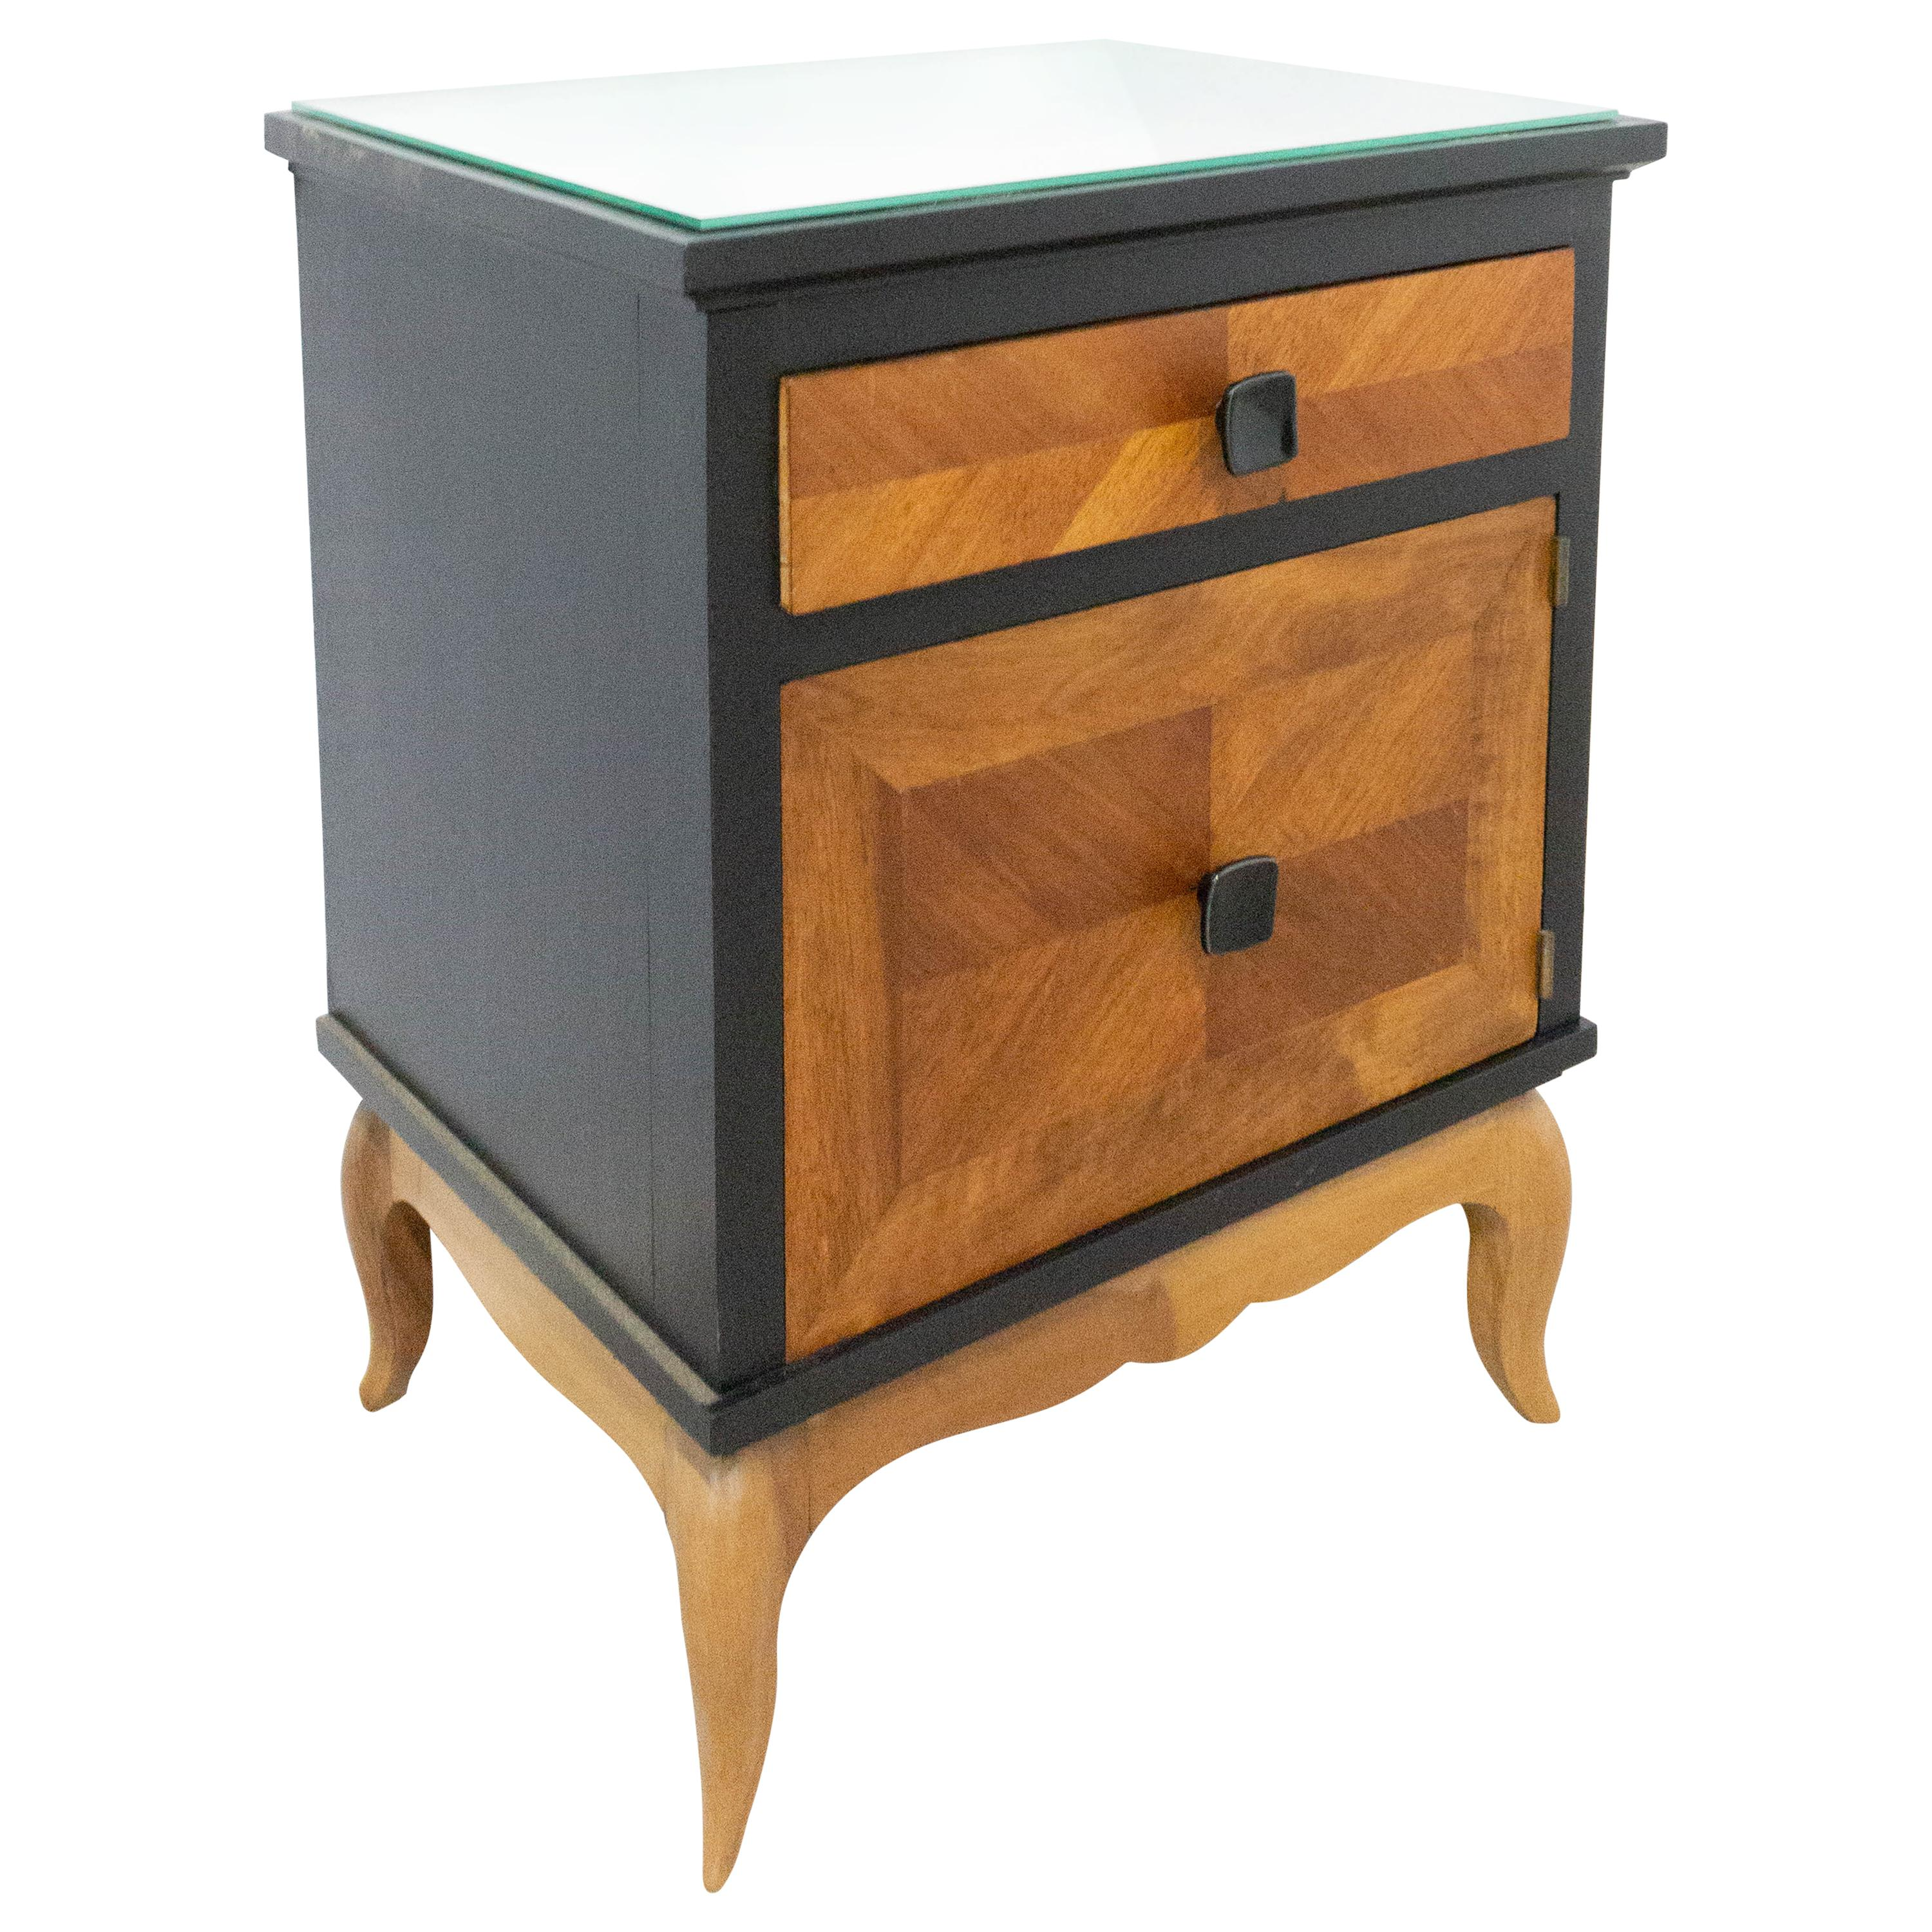 French Nightstand Side Cabinet Bedside Table Two-Toned Black and Cherrywood,1960